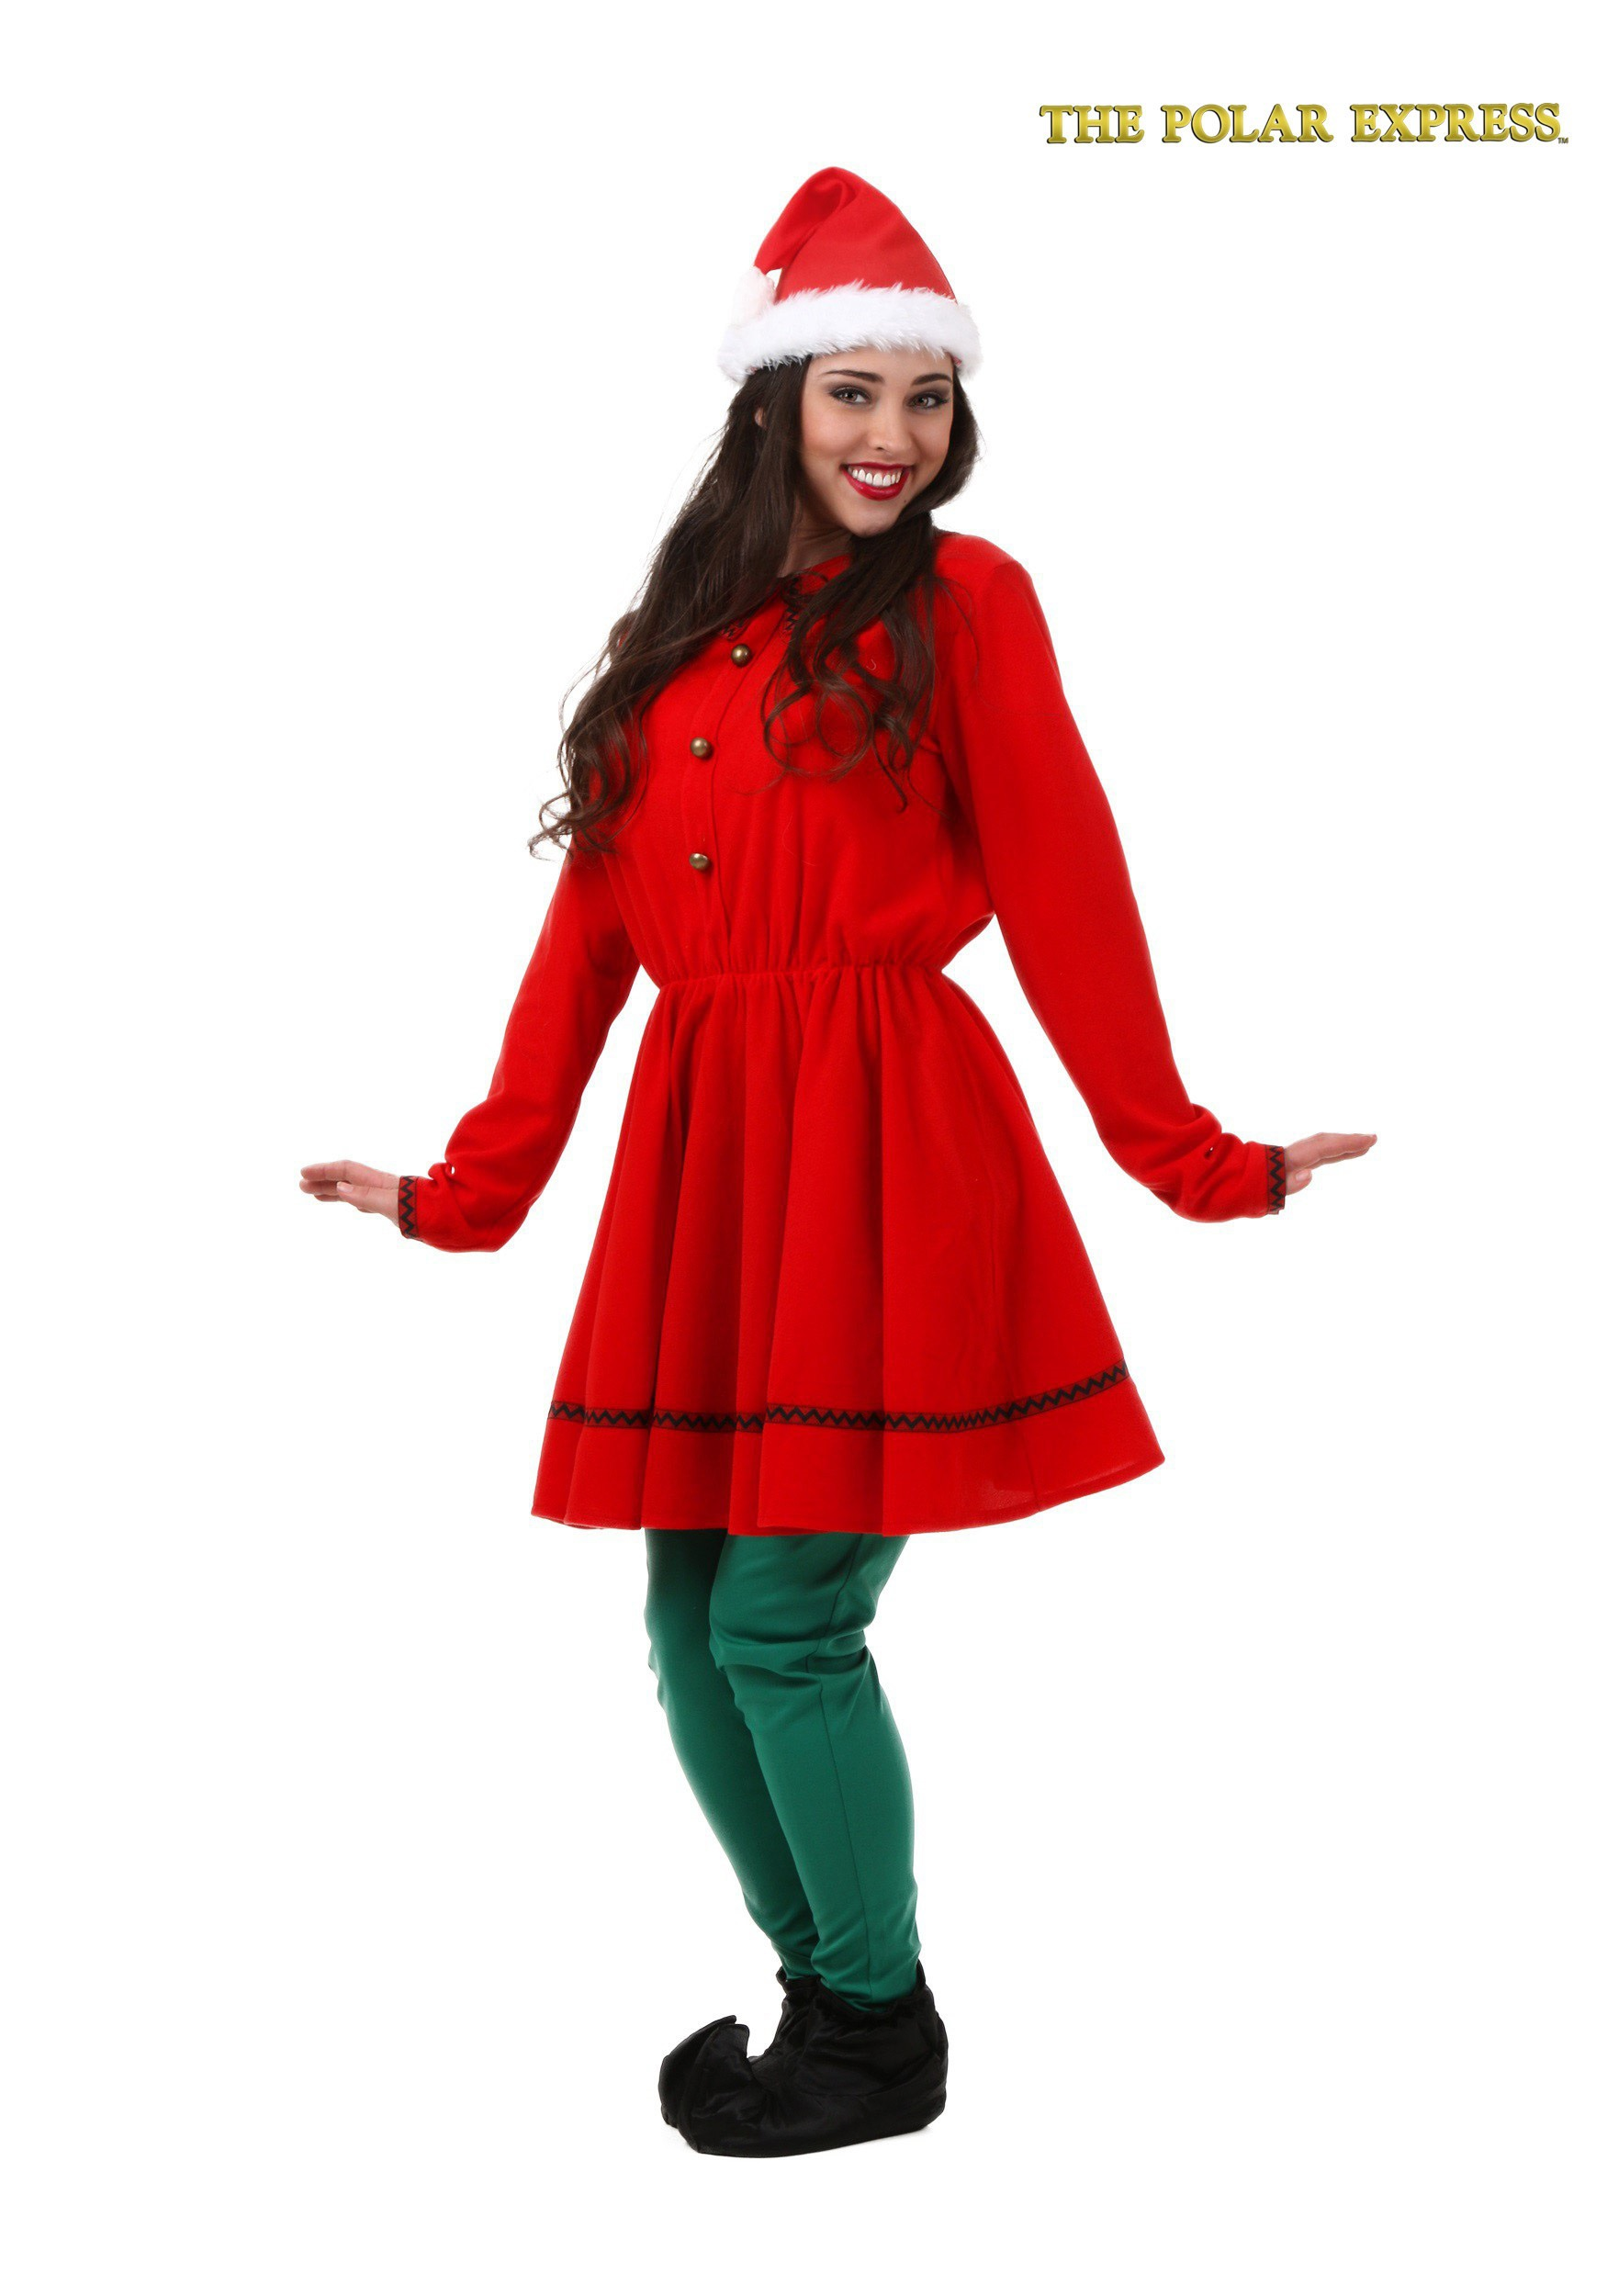 Adult Polar Express Elf Costume